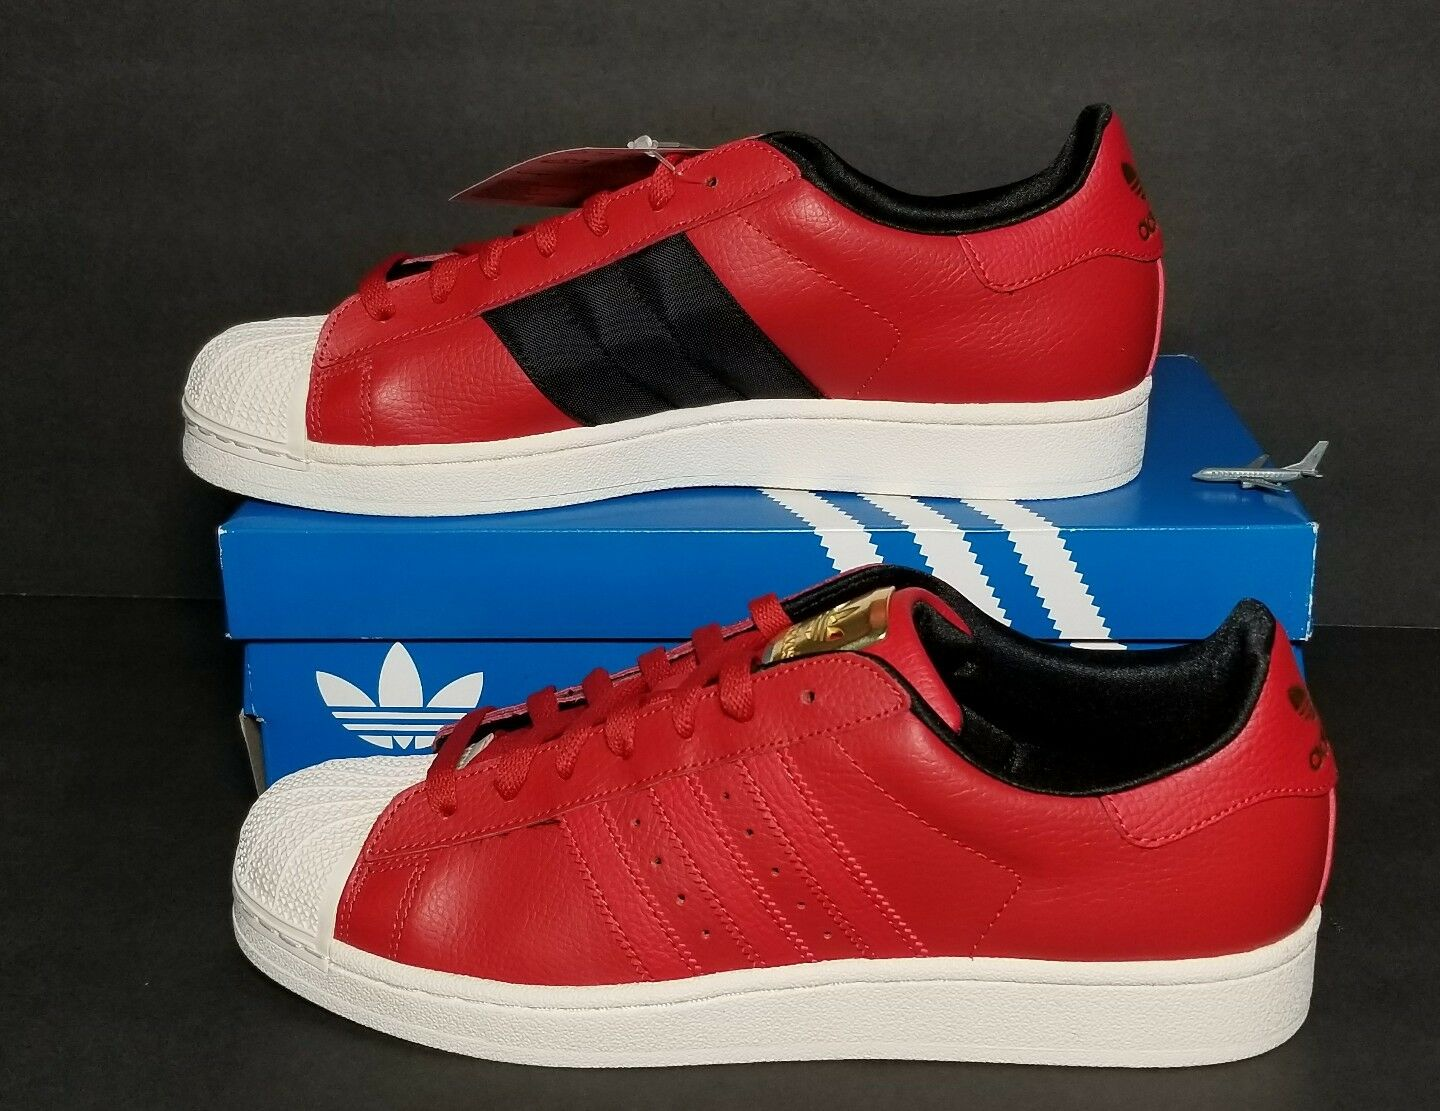 ADIDAS SUPERSTAR II MEN'S MULTIPLE SIZES NEW/BOX RED LEATHER GOLD EMBLEM D74391